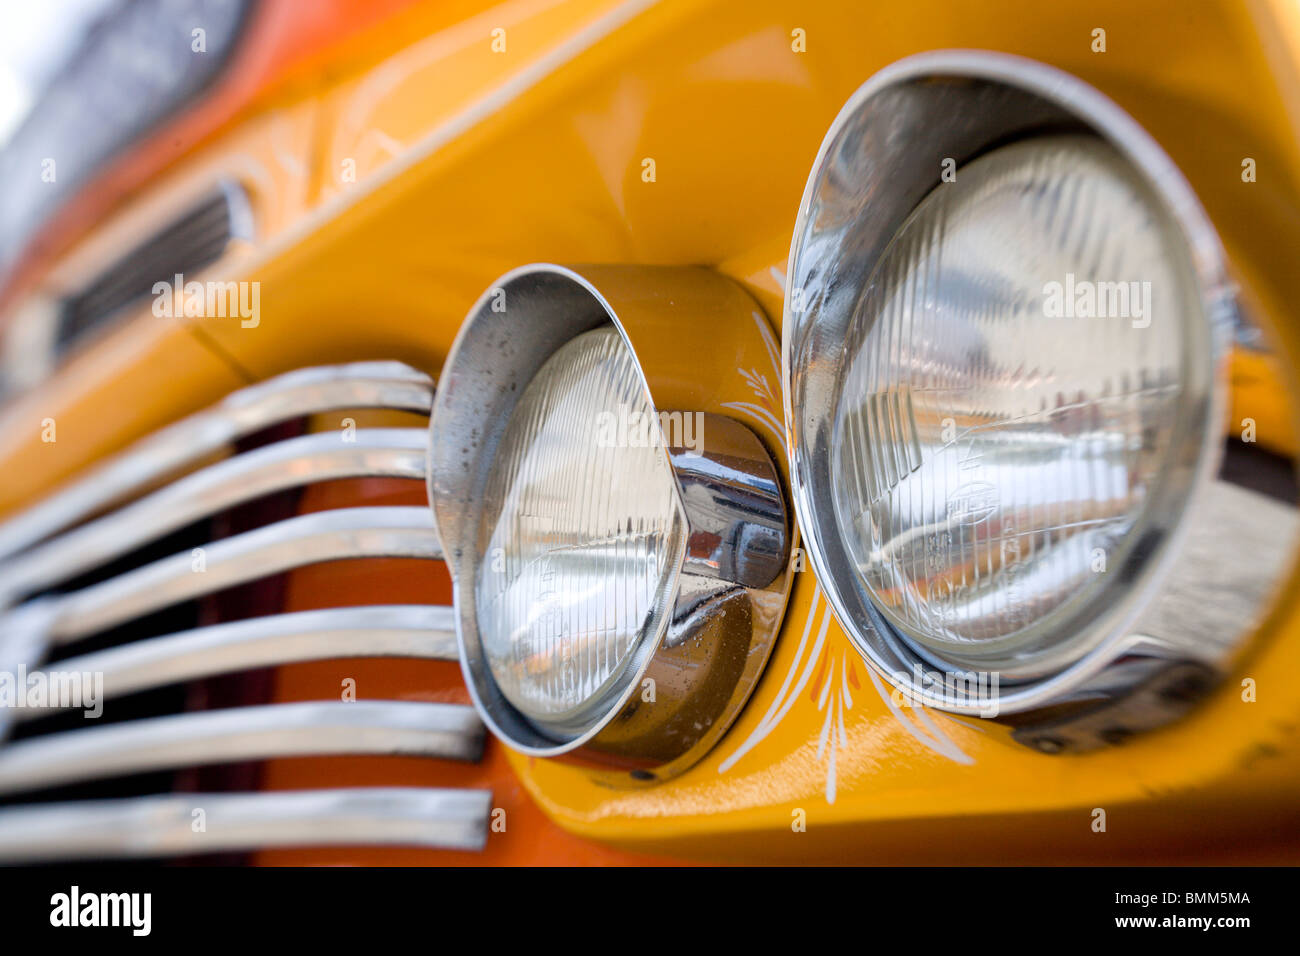 Detail of a bus in Malta Stock Photo